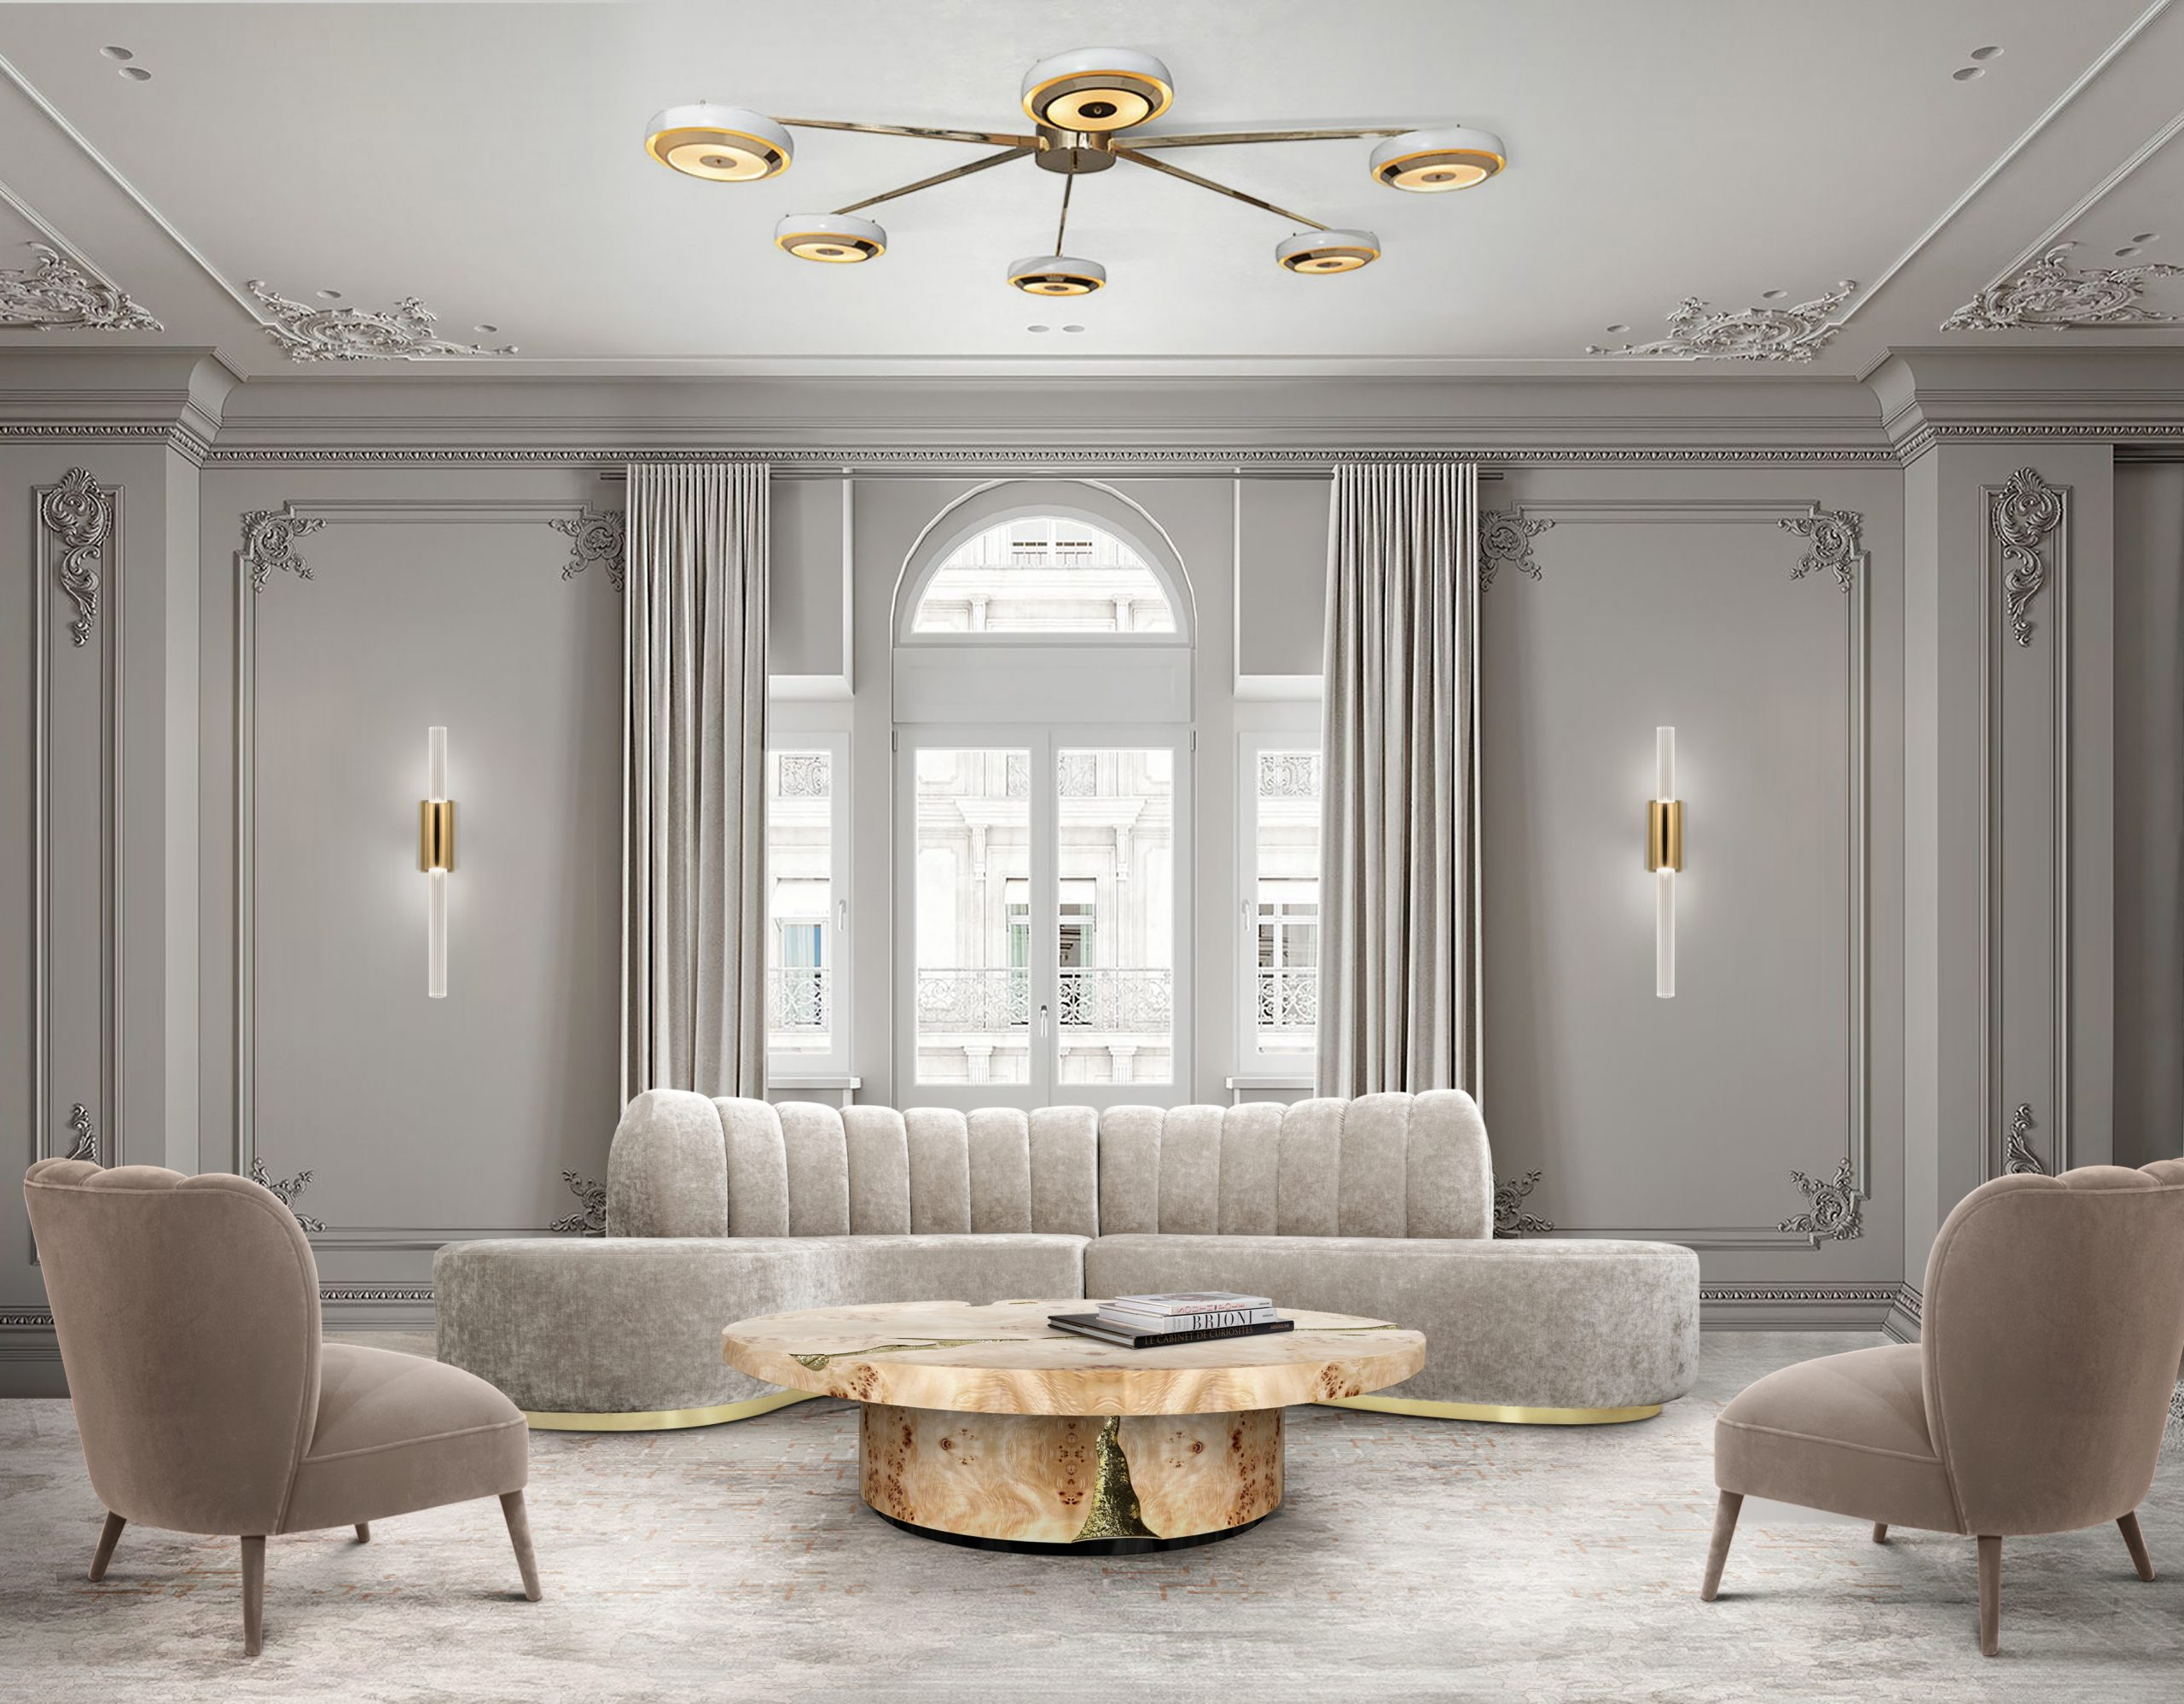 Behold The Marble Design Ideas That Made Our Editor's Jaw Drop!